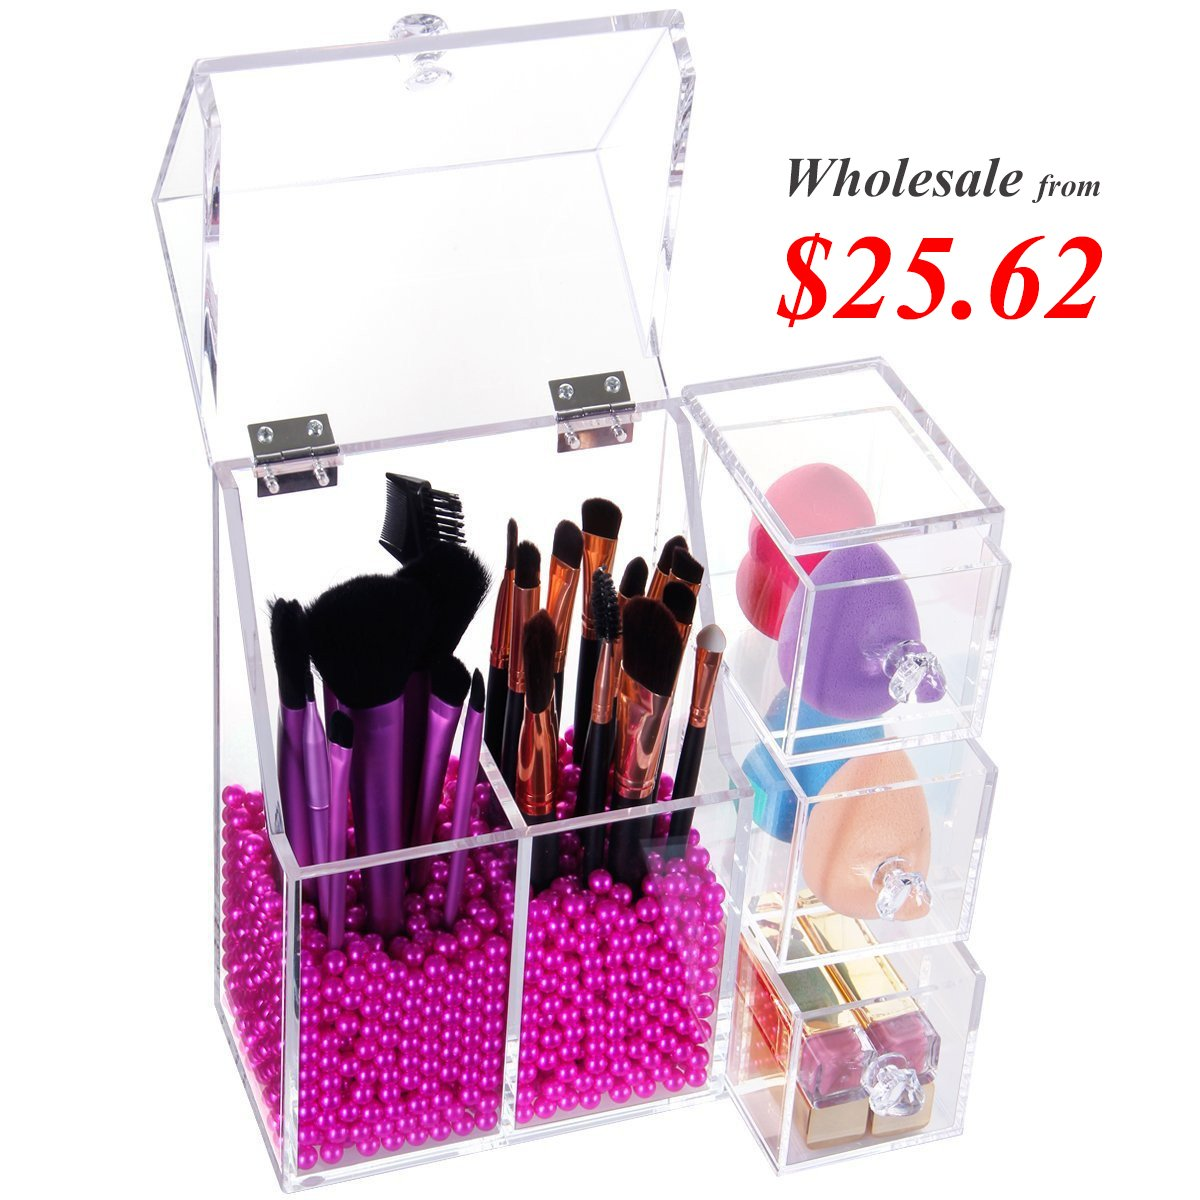 Lifewit Acrylic All In One Makeup Organizer